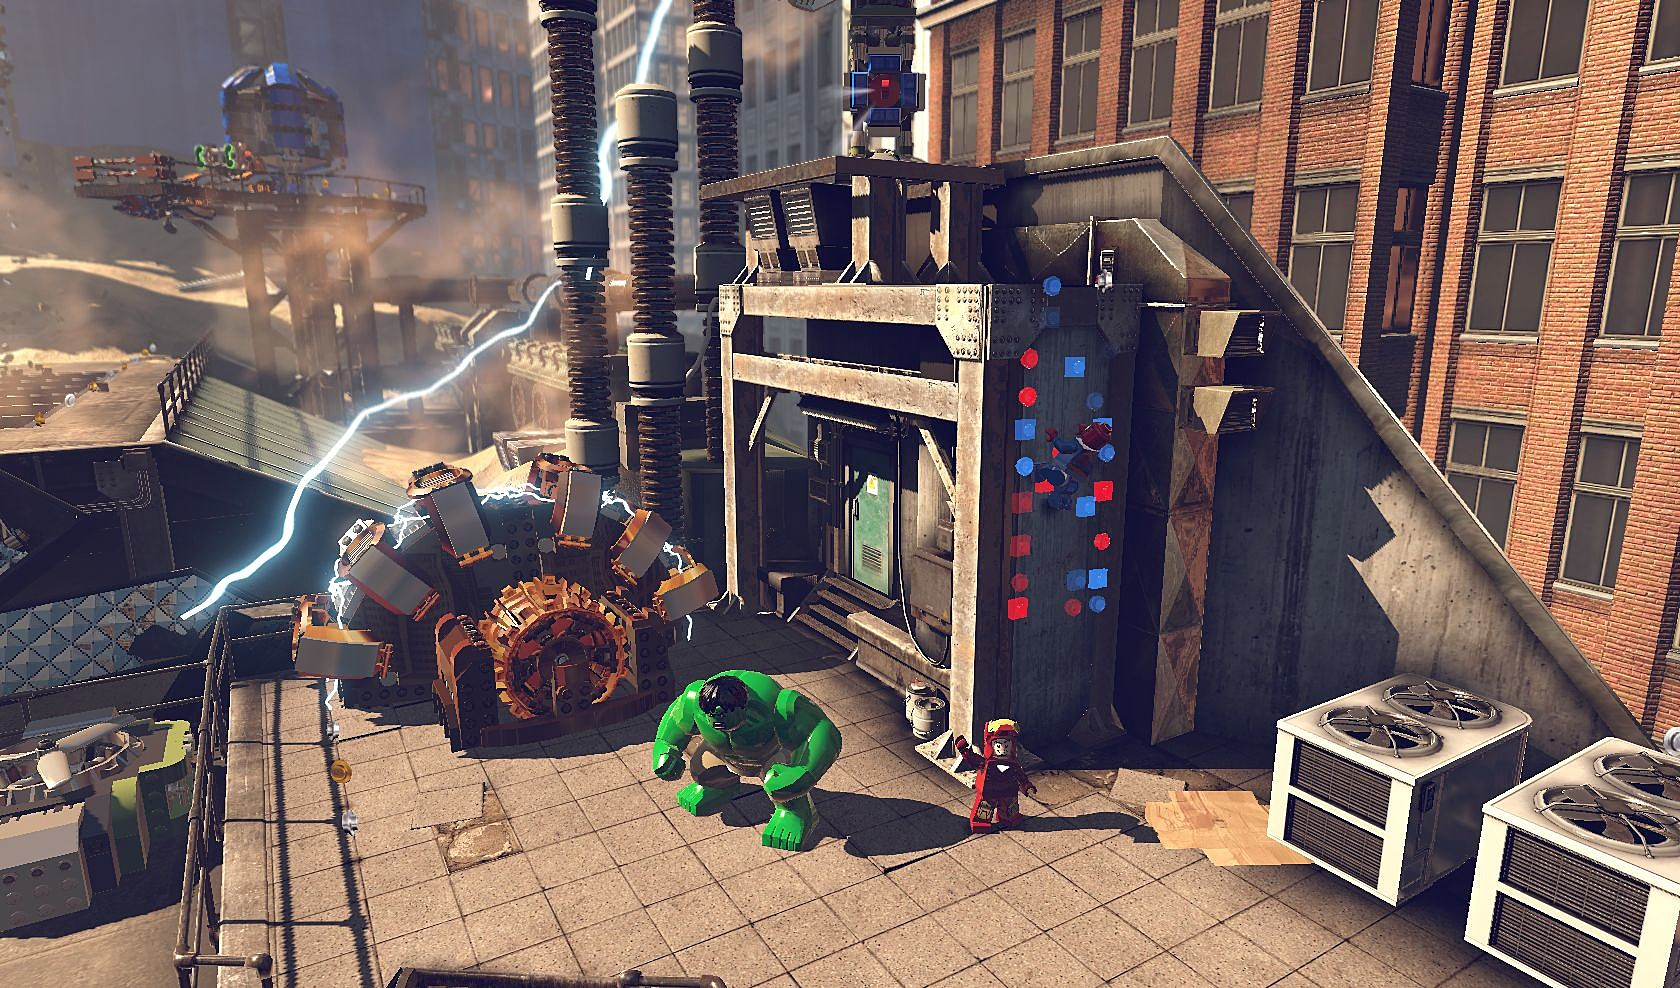 New 'lego marvel super heroes' images and gameplay footage arrive